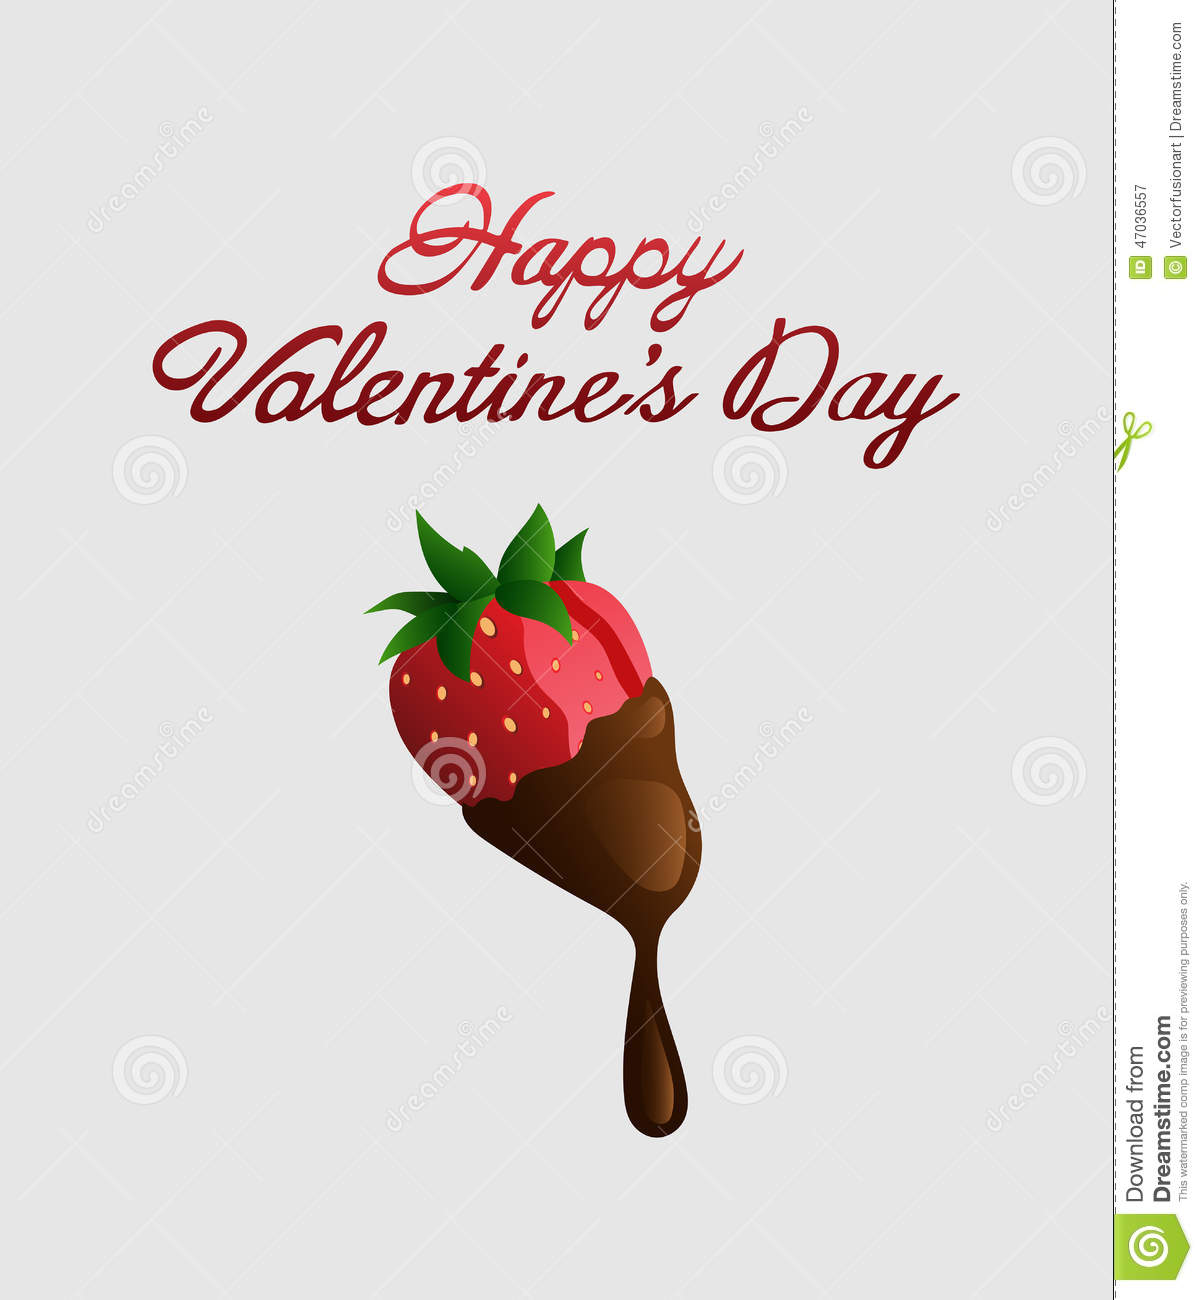 Happy Valentines Day Vector With Chocolate Strawberry Stock Vector Illustration Of Treat Love 47036557